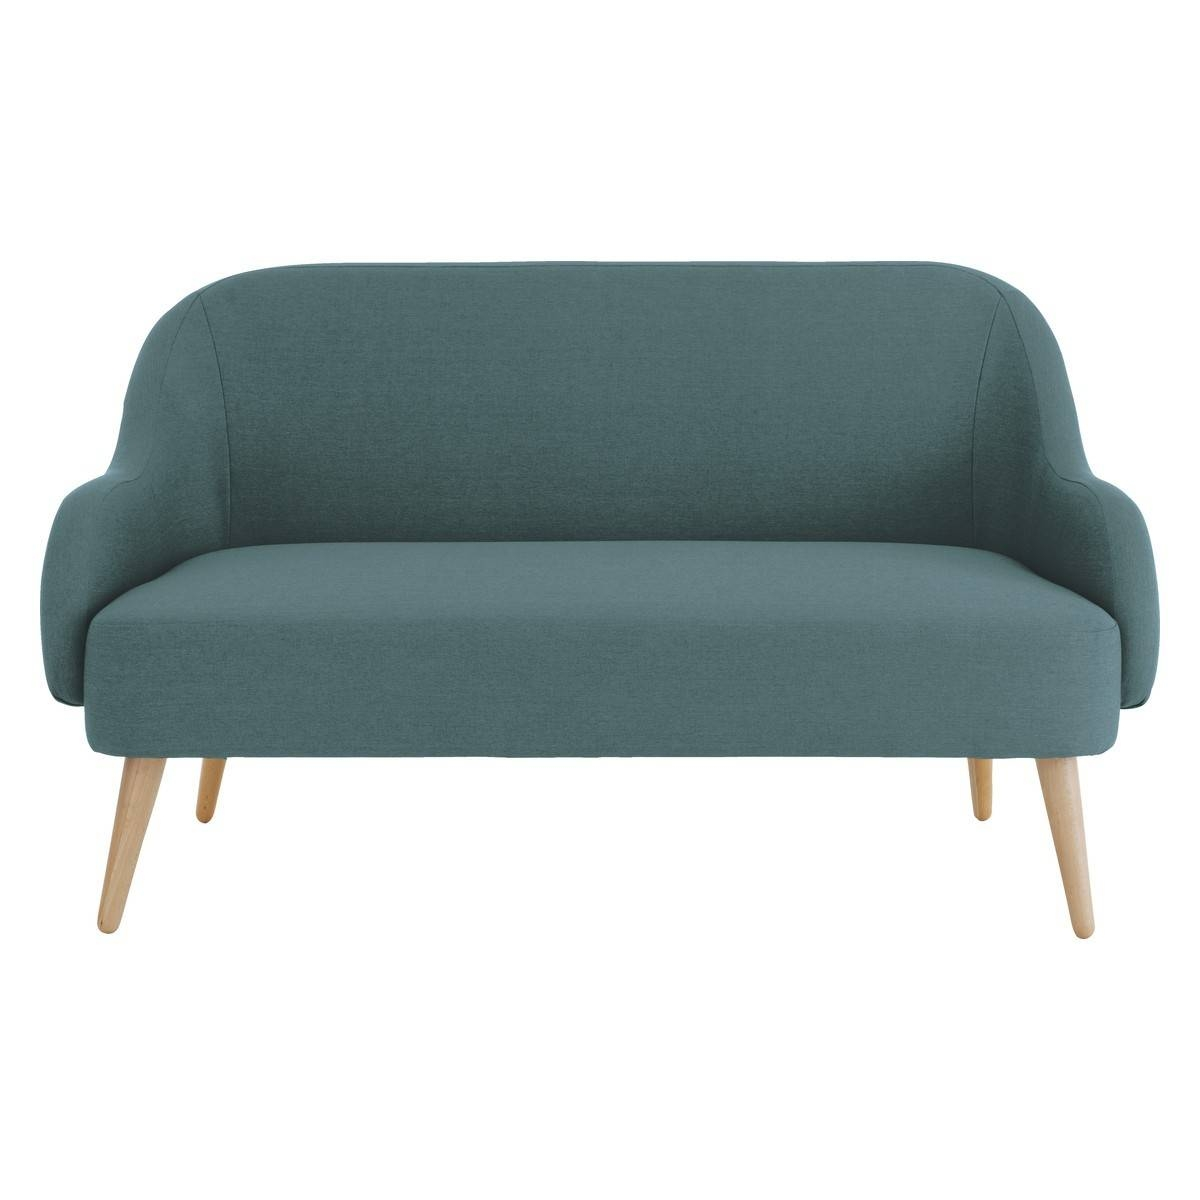 Momo Teal Blue Fabric 2 Seater Sofa | Buy Now At Habitat Uk throughout Two Seater Chairs (Image 14 of 30)